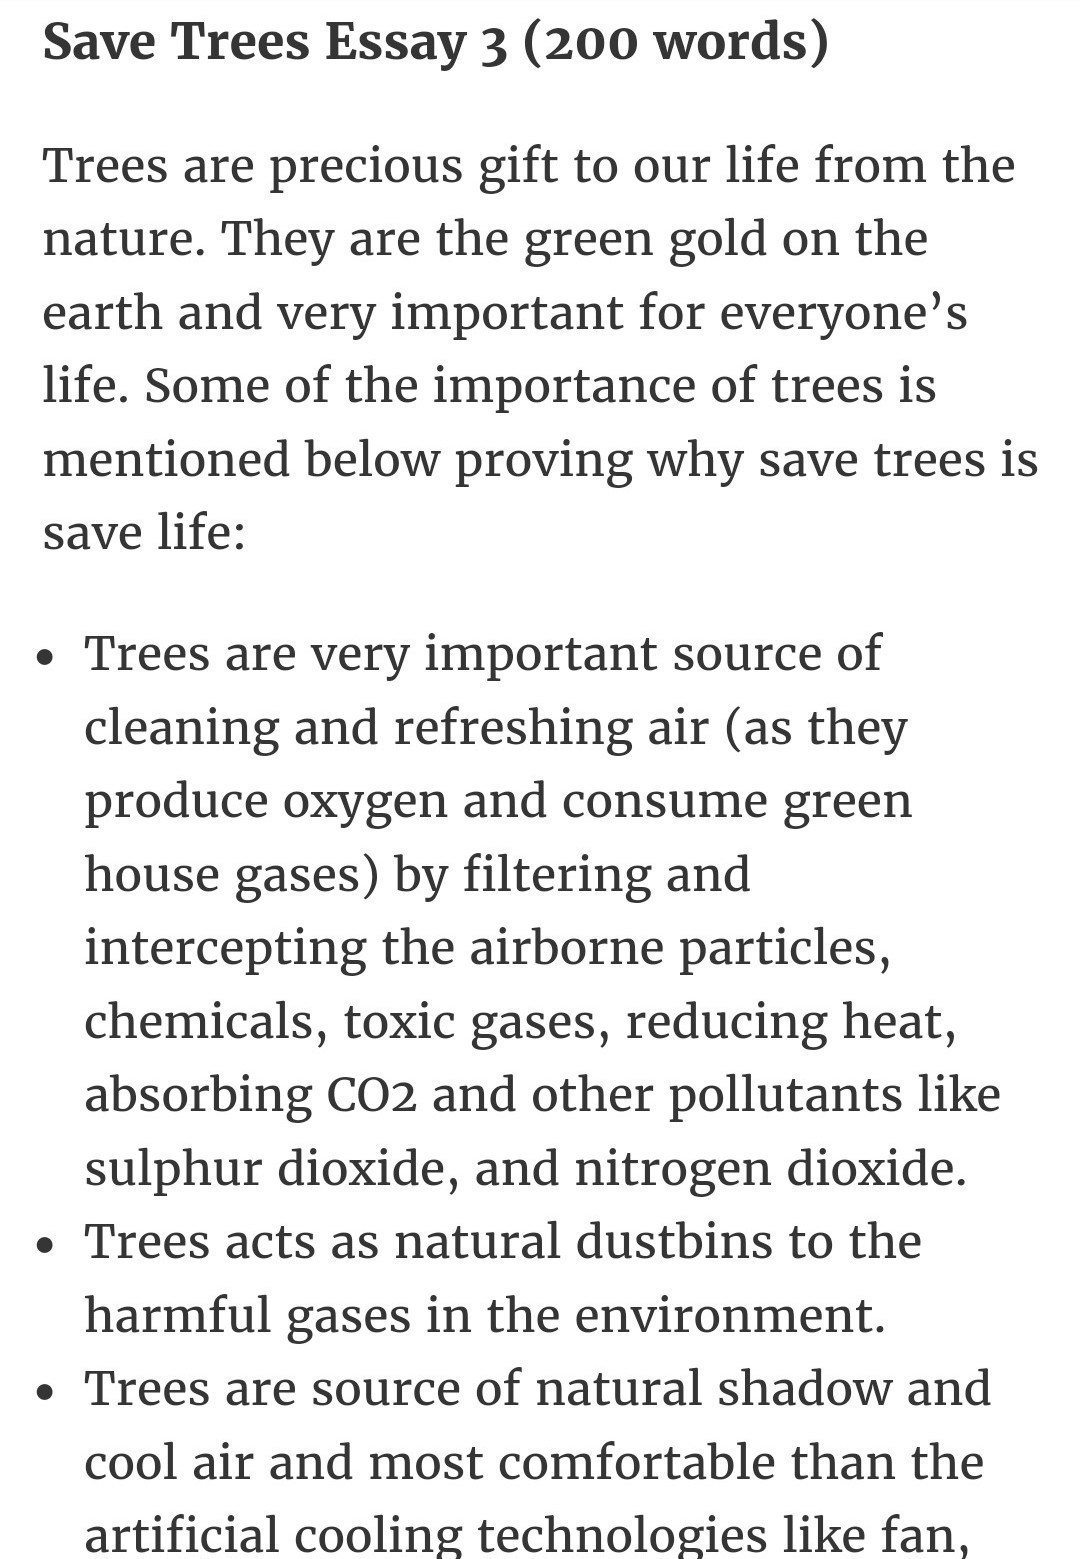 005 How Can We Save Trees Essay Example Marvelous To In Hindi Telugu Full